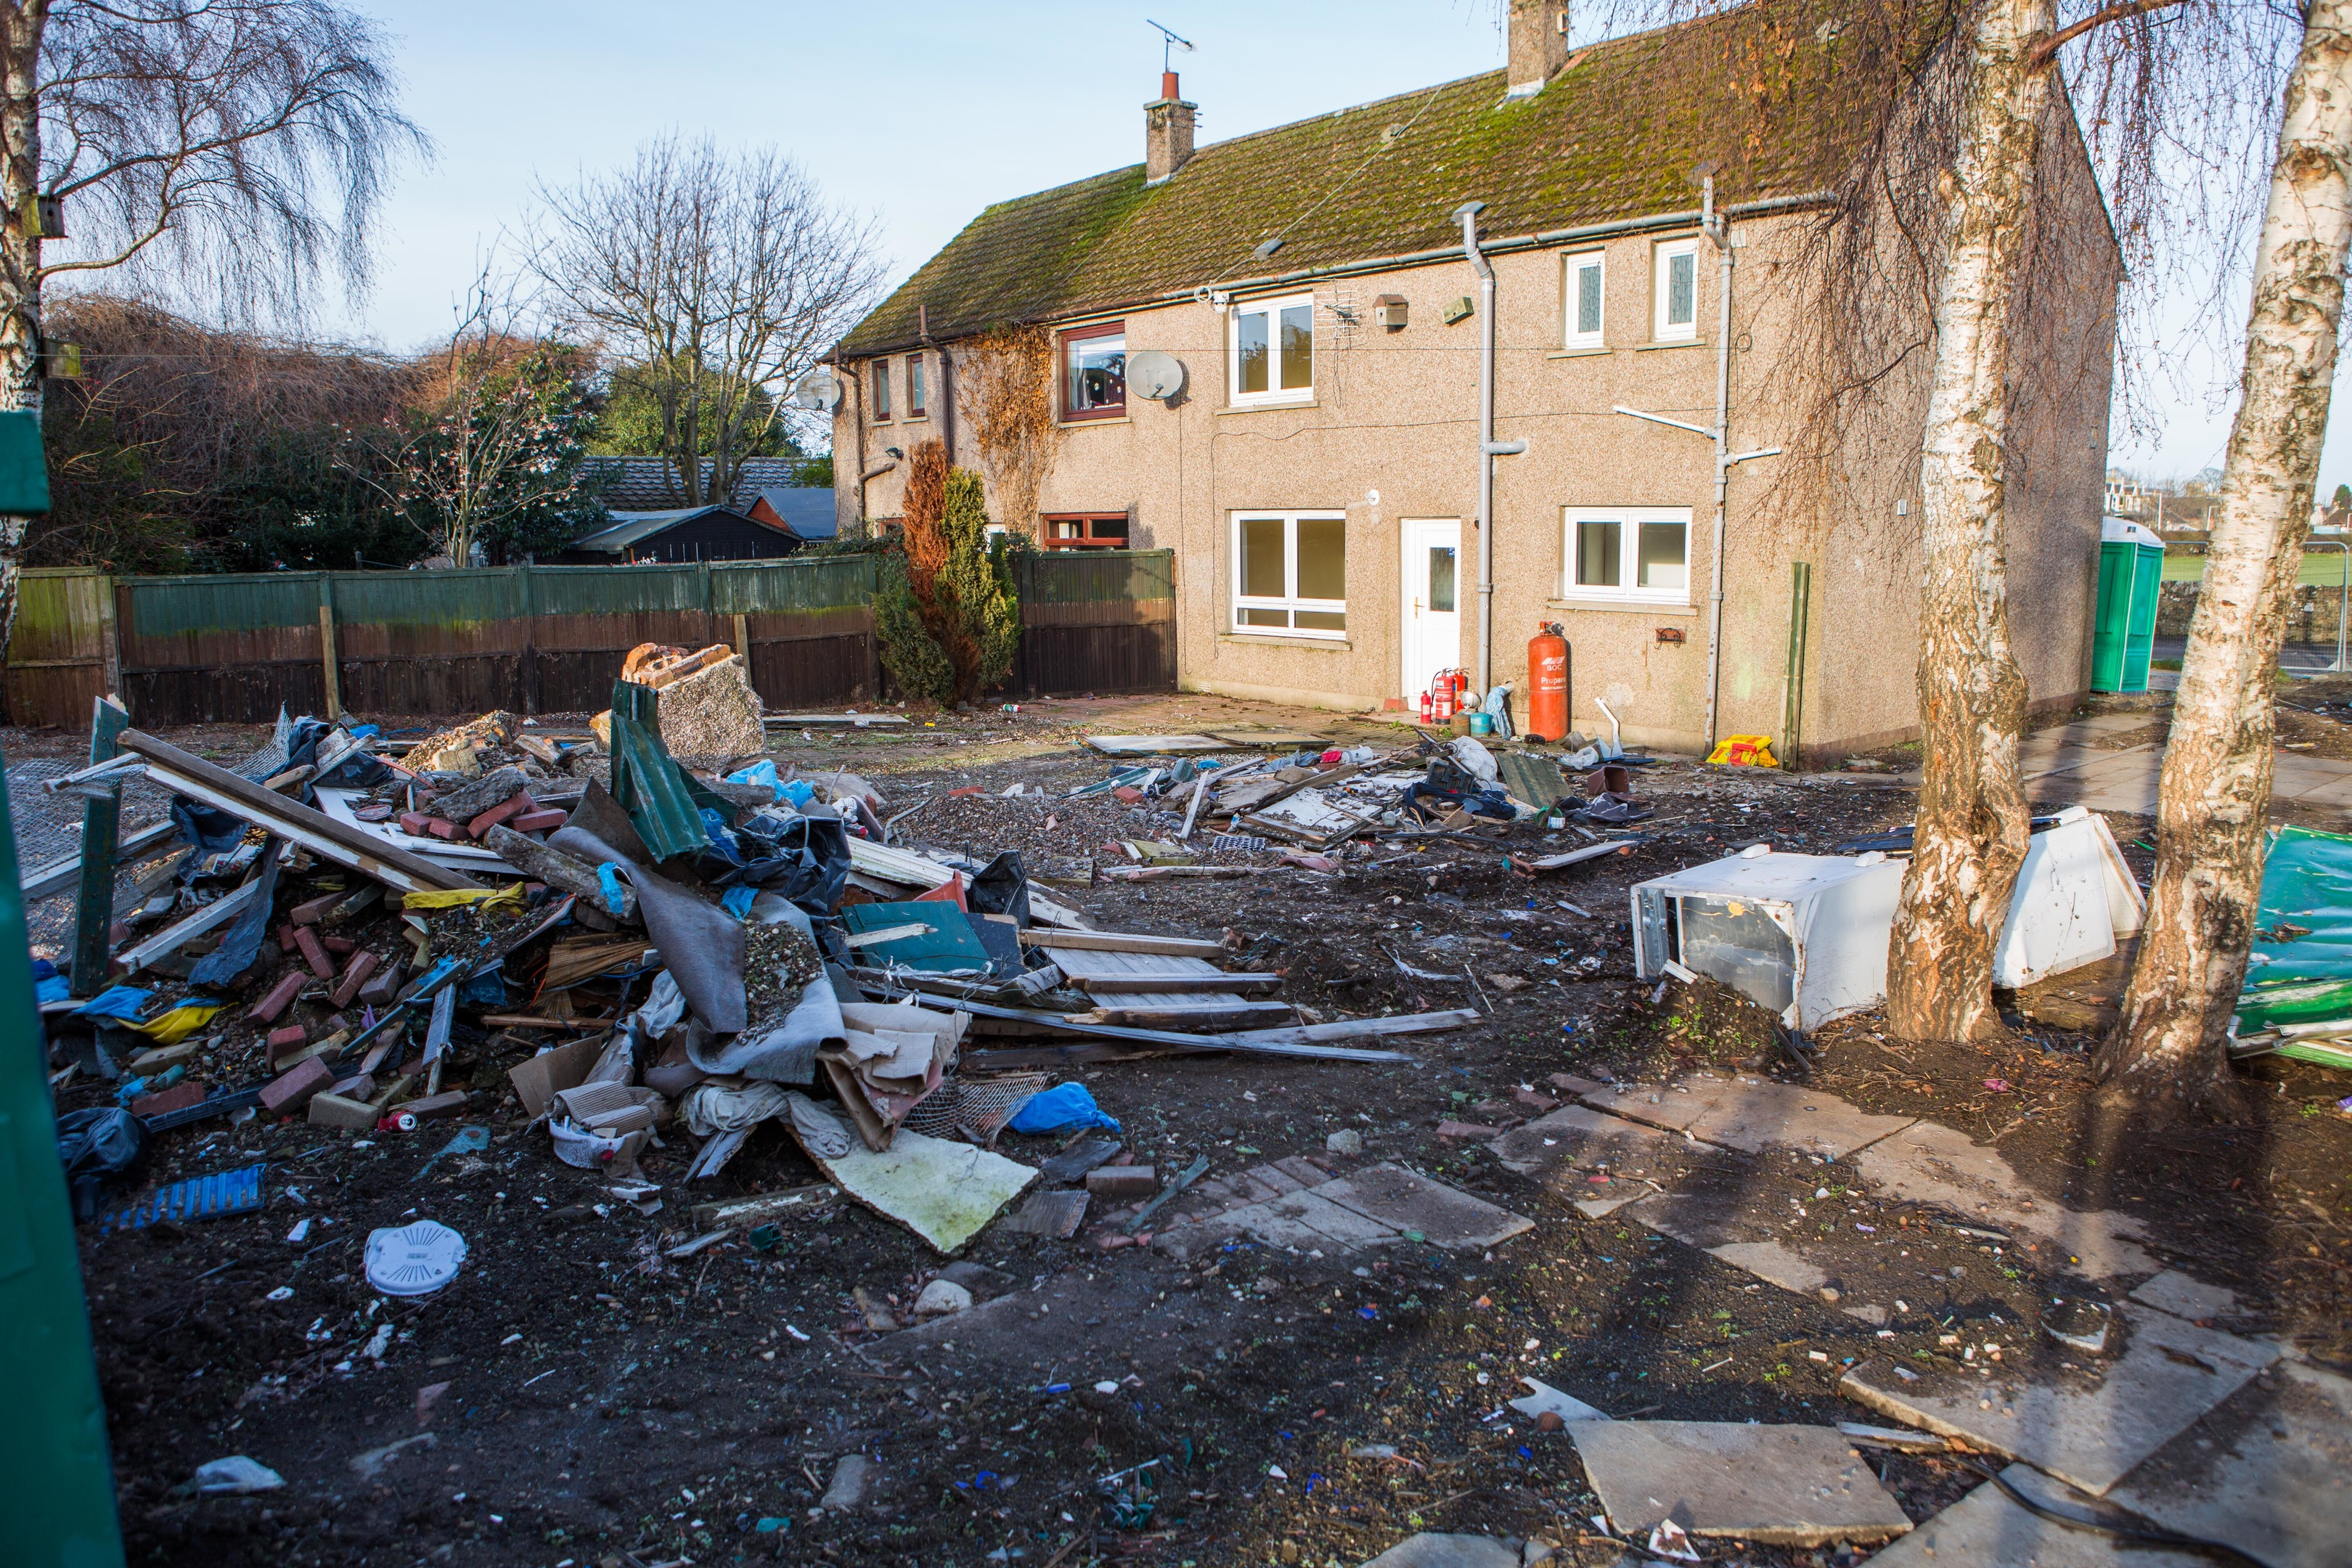 Old fridges, skips, and general waste in a garden causing an eyesore